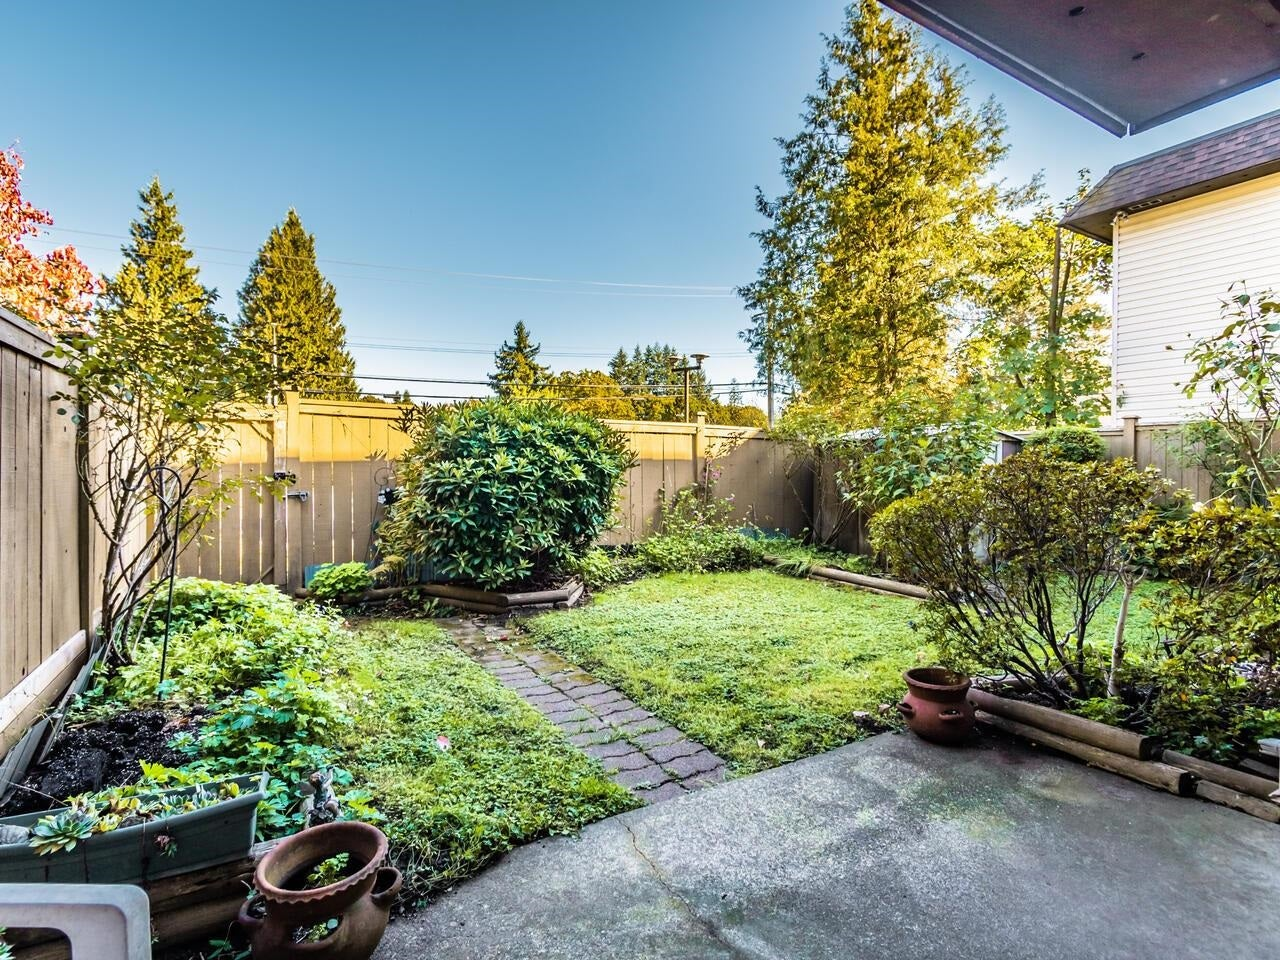 107 5191 203 STREET - Langley City Apartment/Condo for sale, 2 Bedrooms (R2625712) - #17